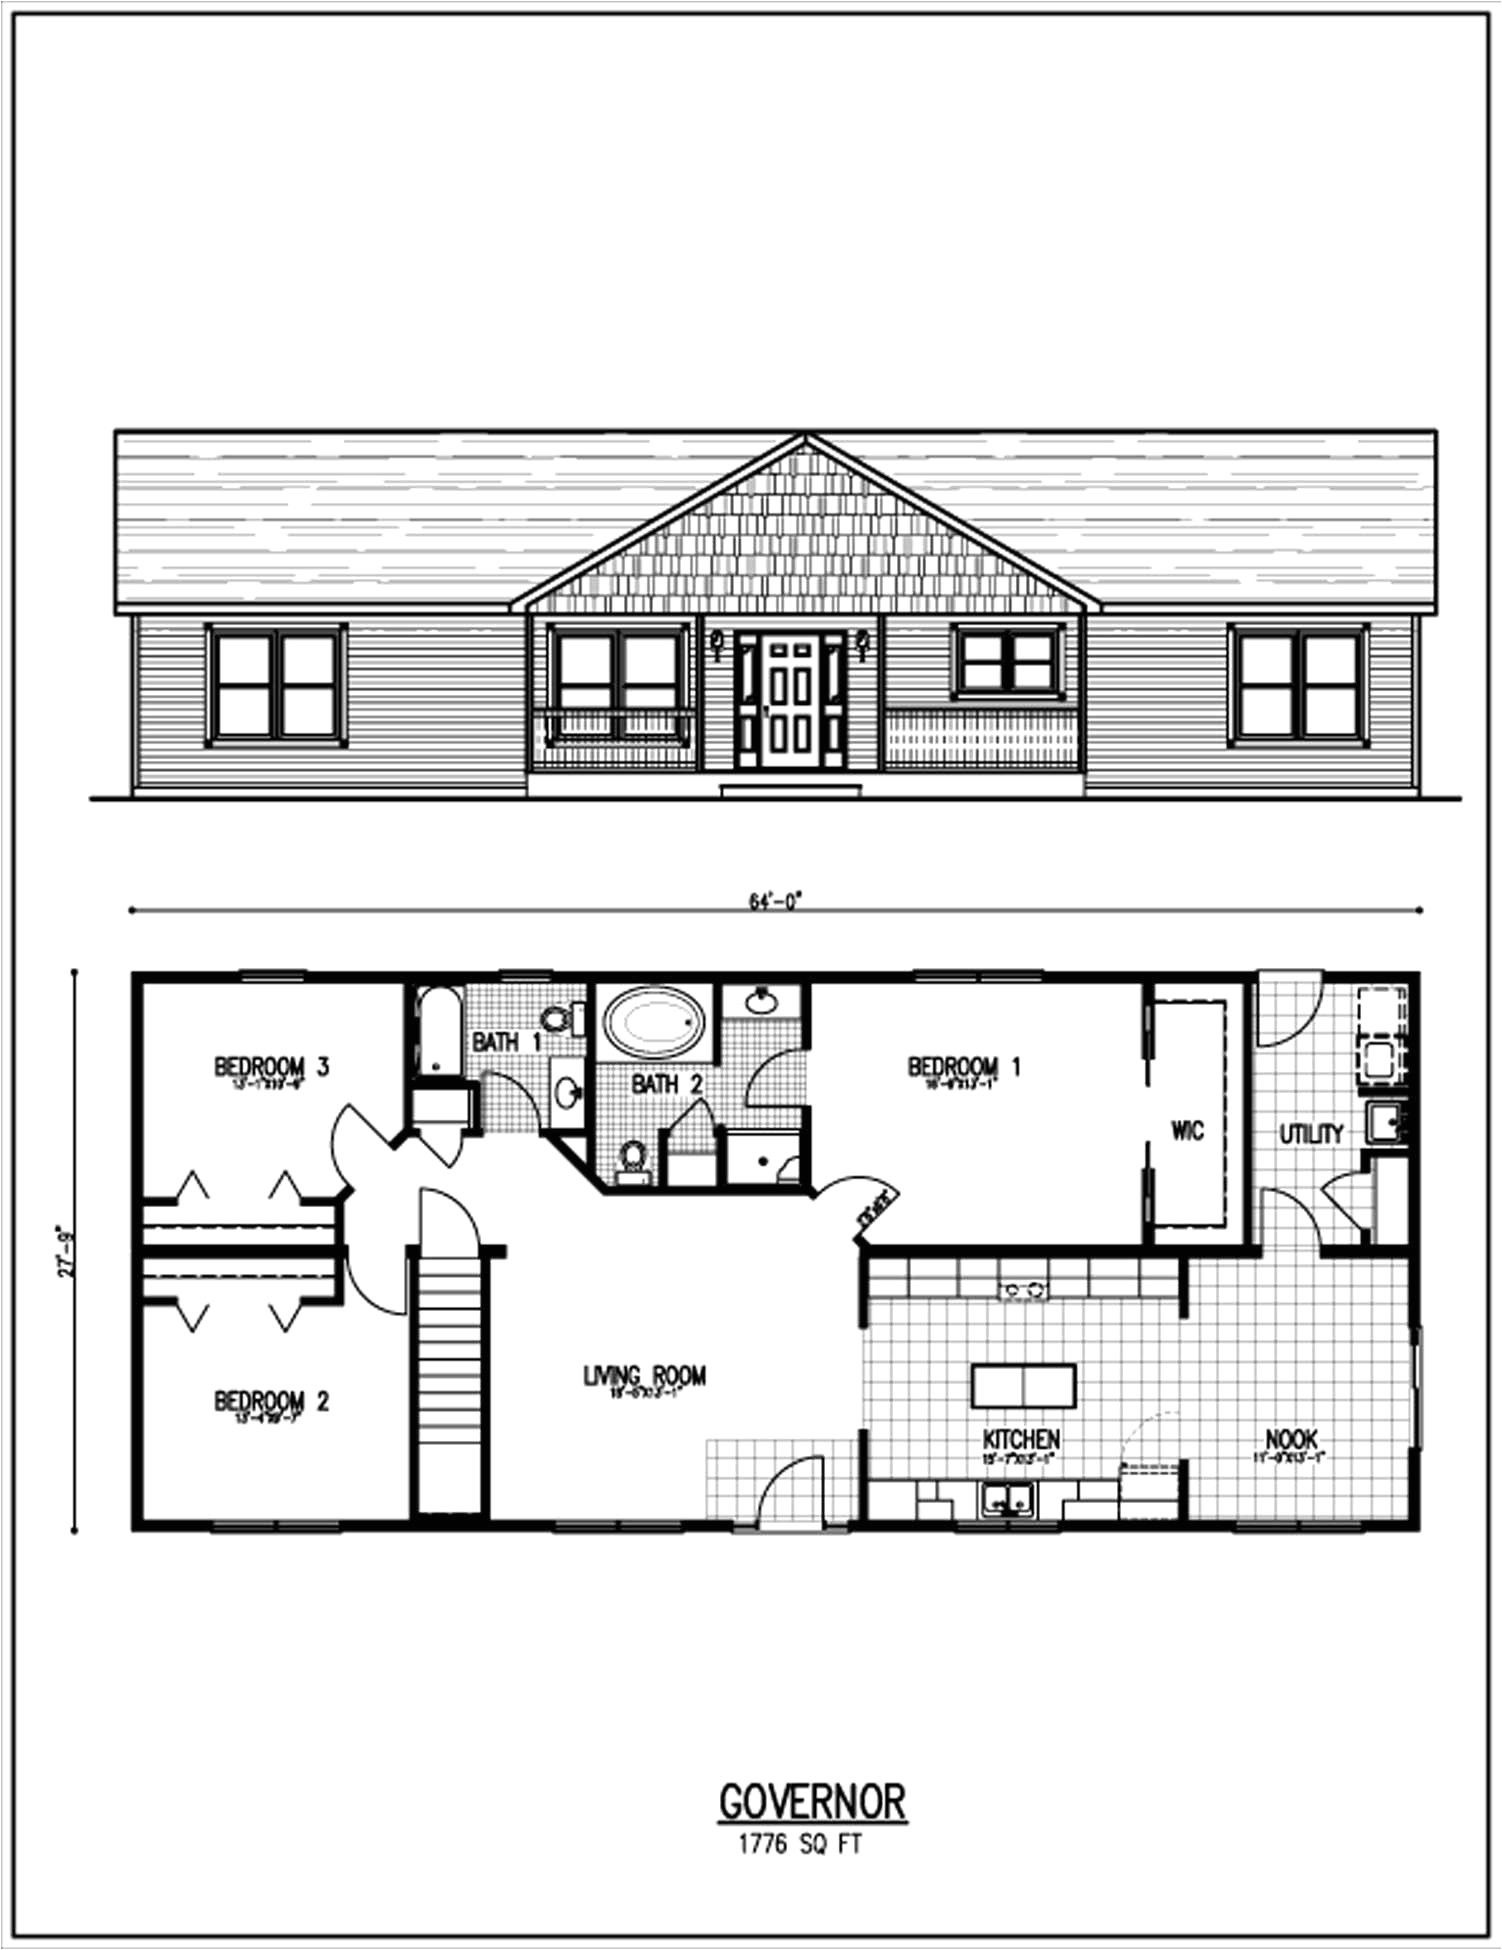 Build A House for Under 150k New House Plans Under 150k to Build Check More at S